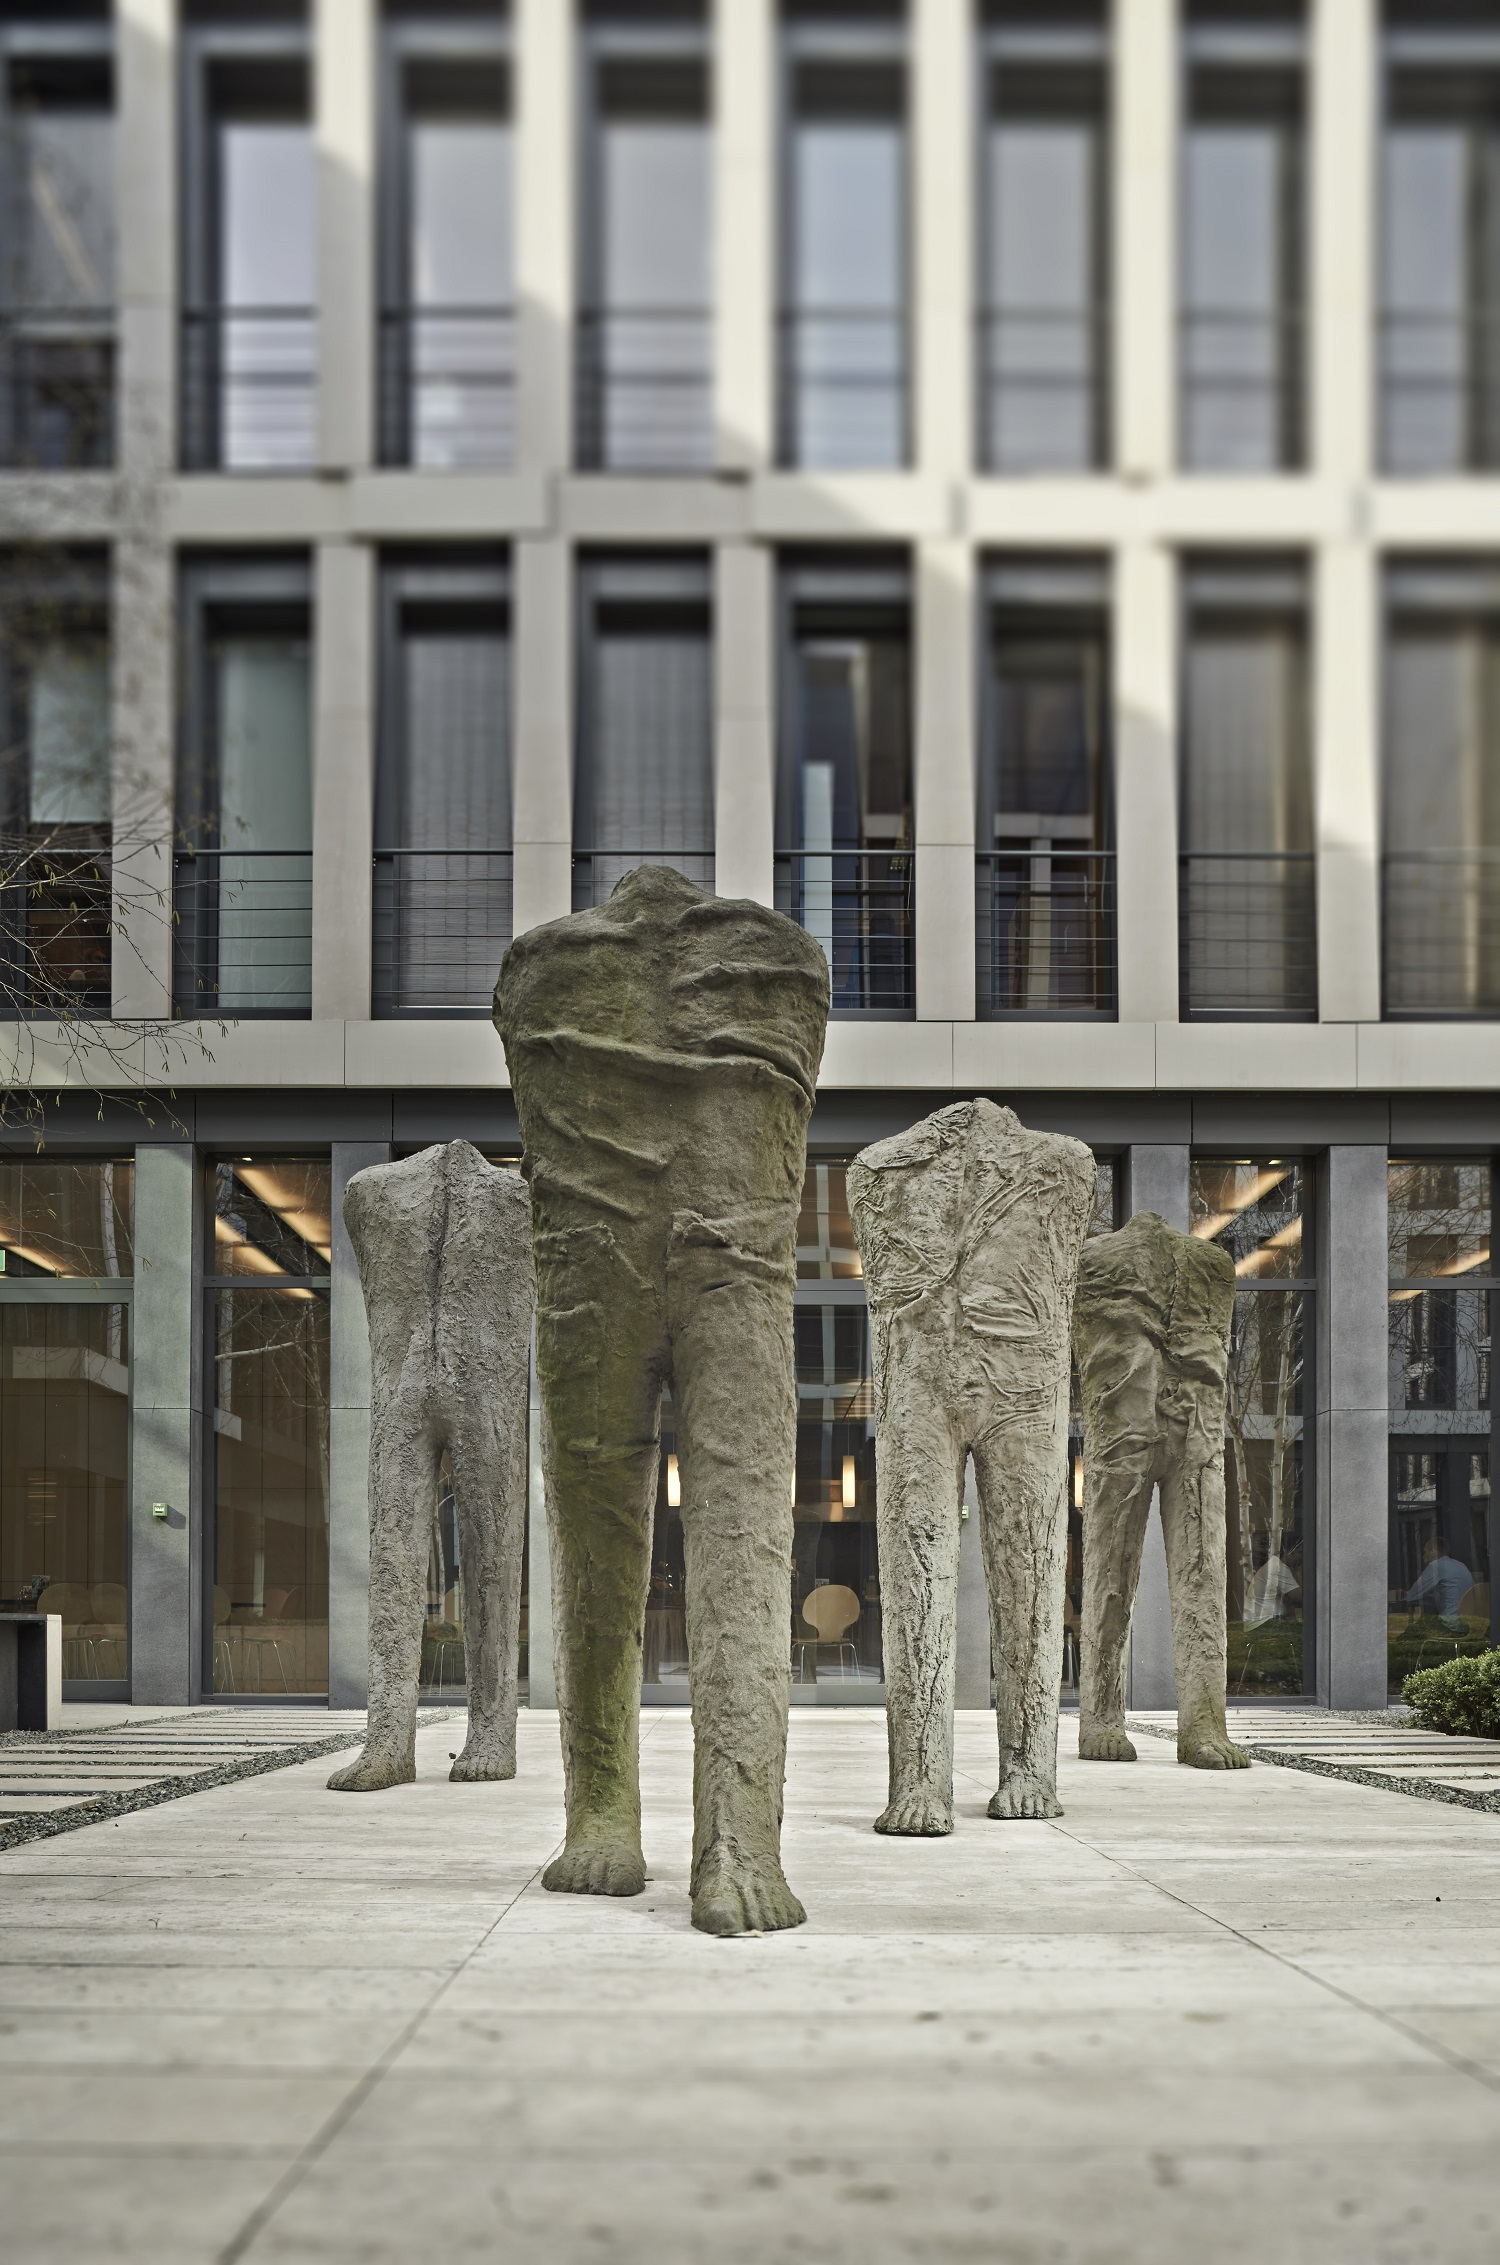 A work by Magdalena Abakanowicz from the Starak Collection. Courtesy of Starak Family Foundation.